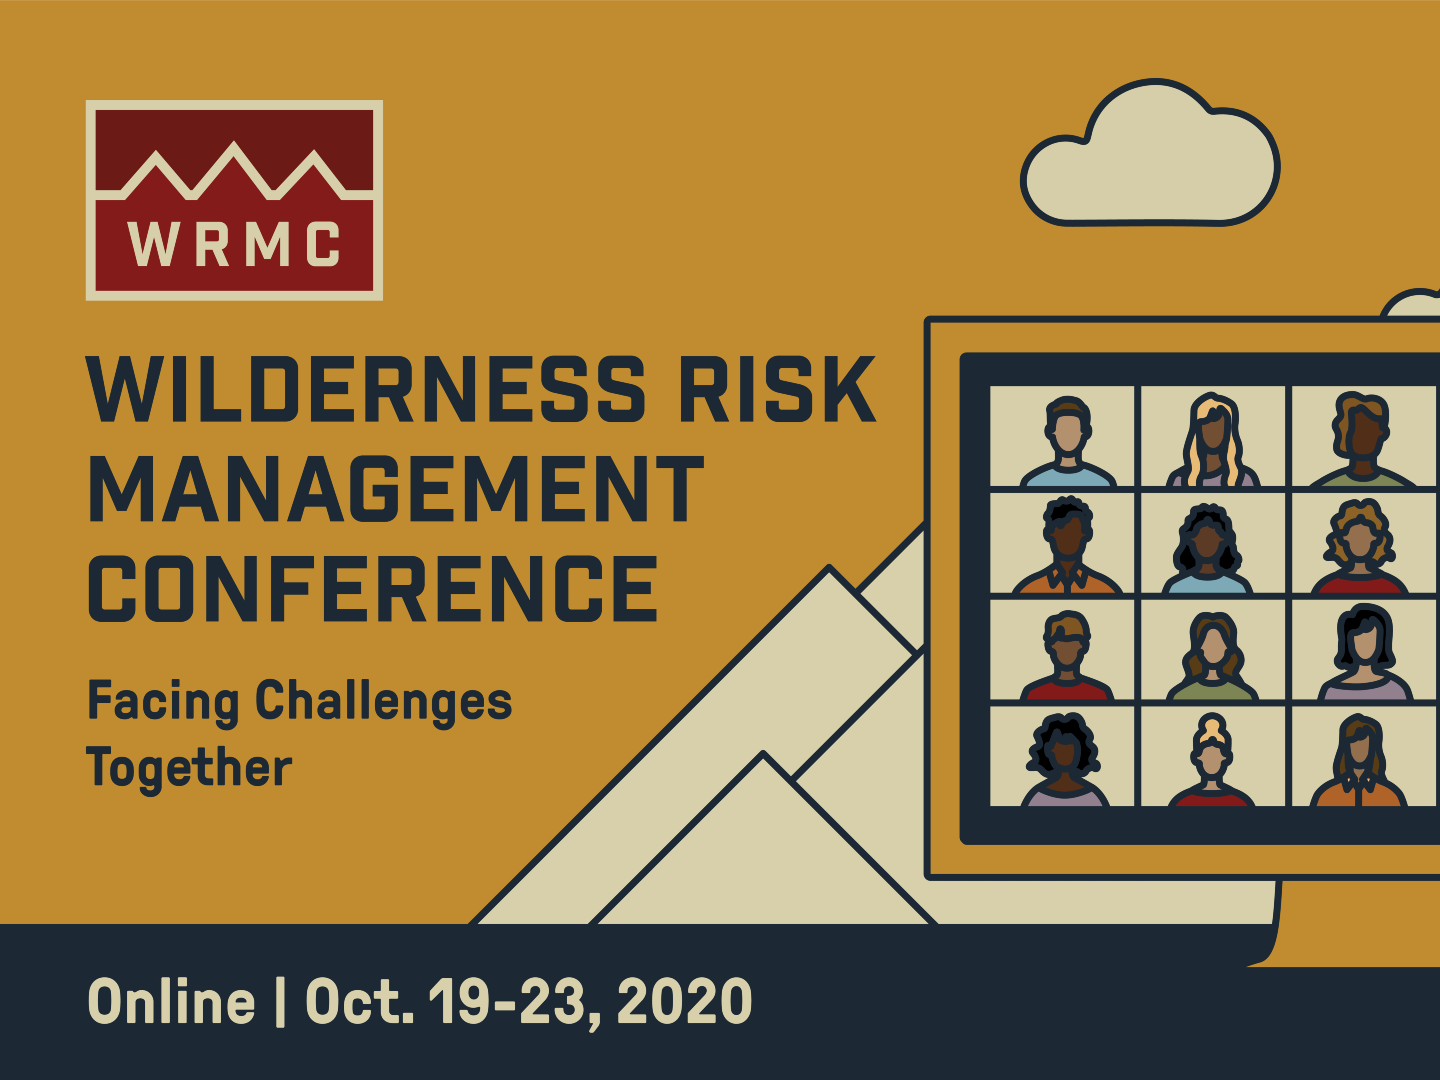 Banner for the 2020 Wilderness Risk Management Conference with stylized artwork of a laptop overlaying a mountain scene